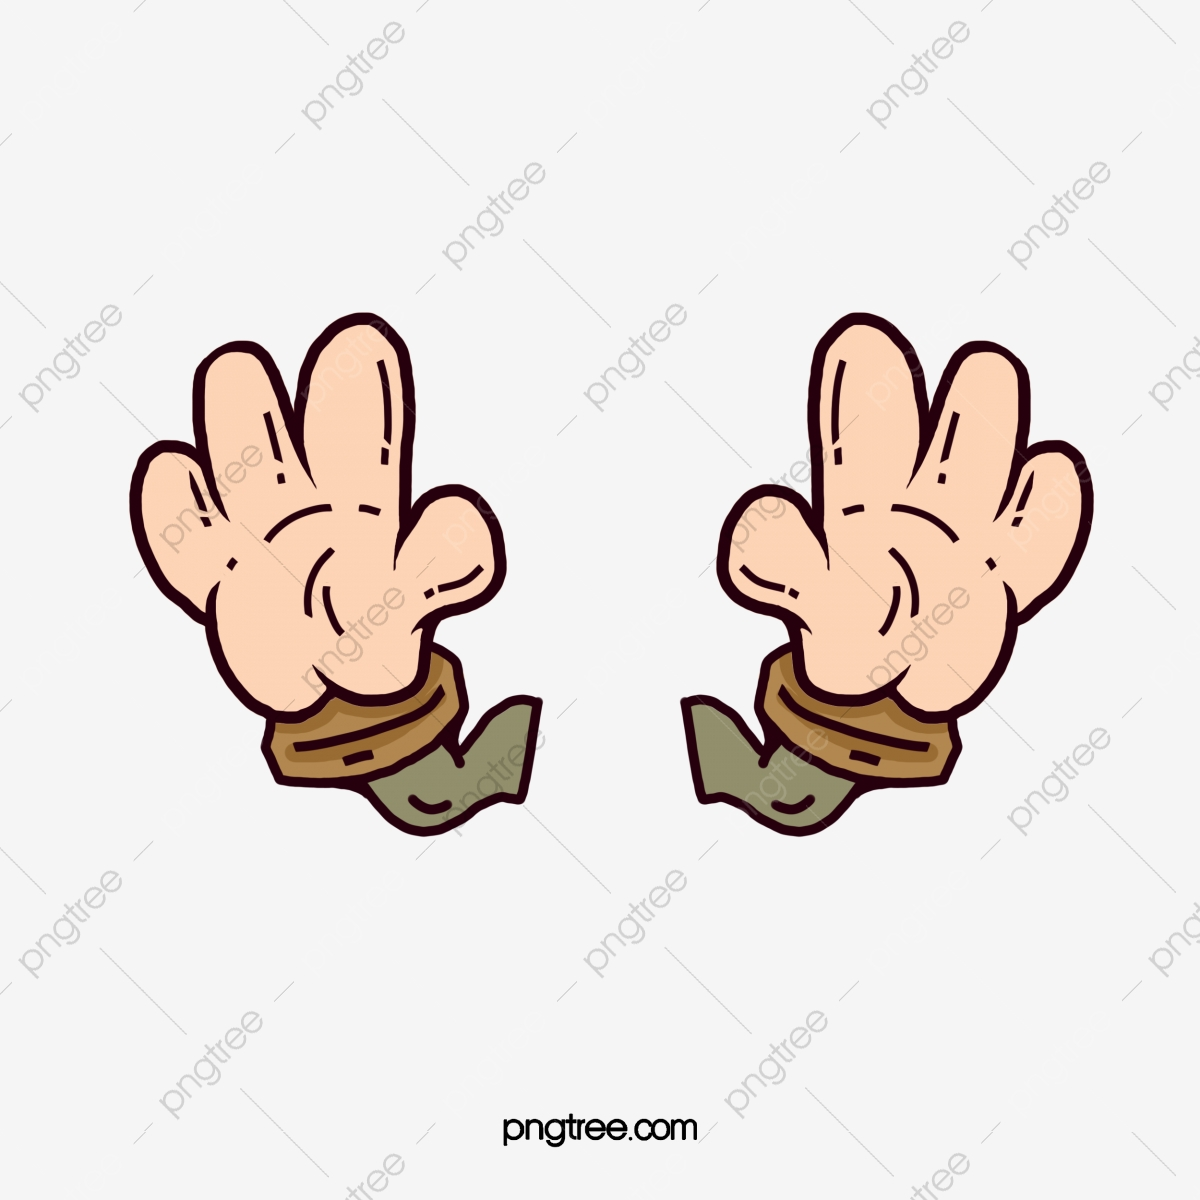 Cartoon Hands, Cartoon Clipart, Cartoon, Hand PNG Transparent.